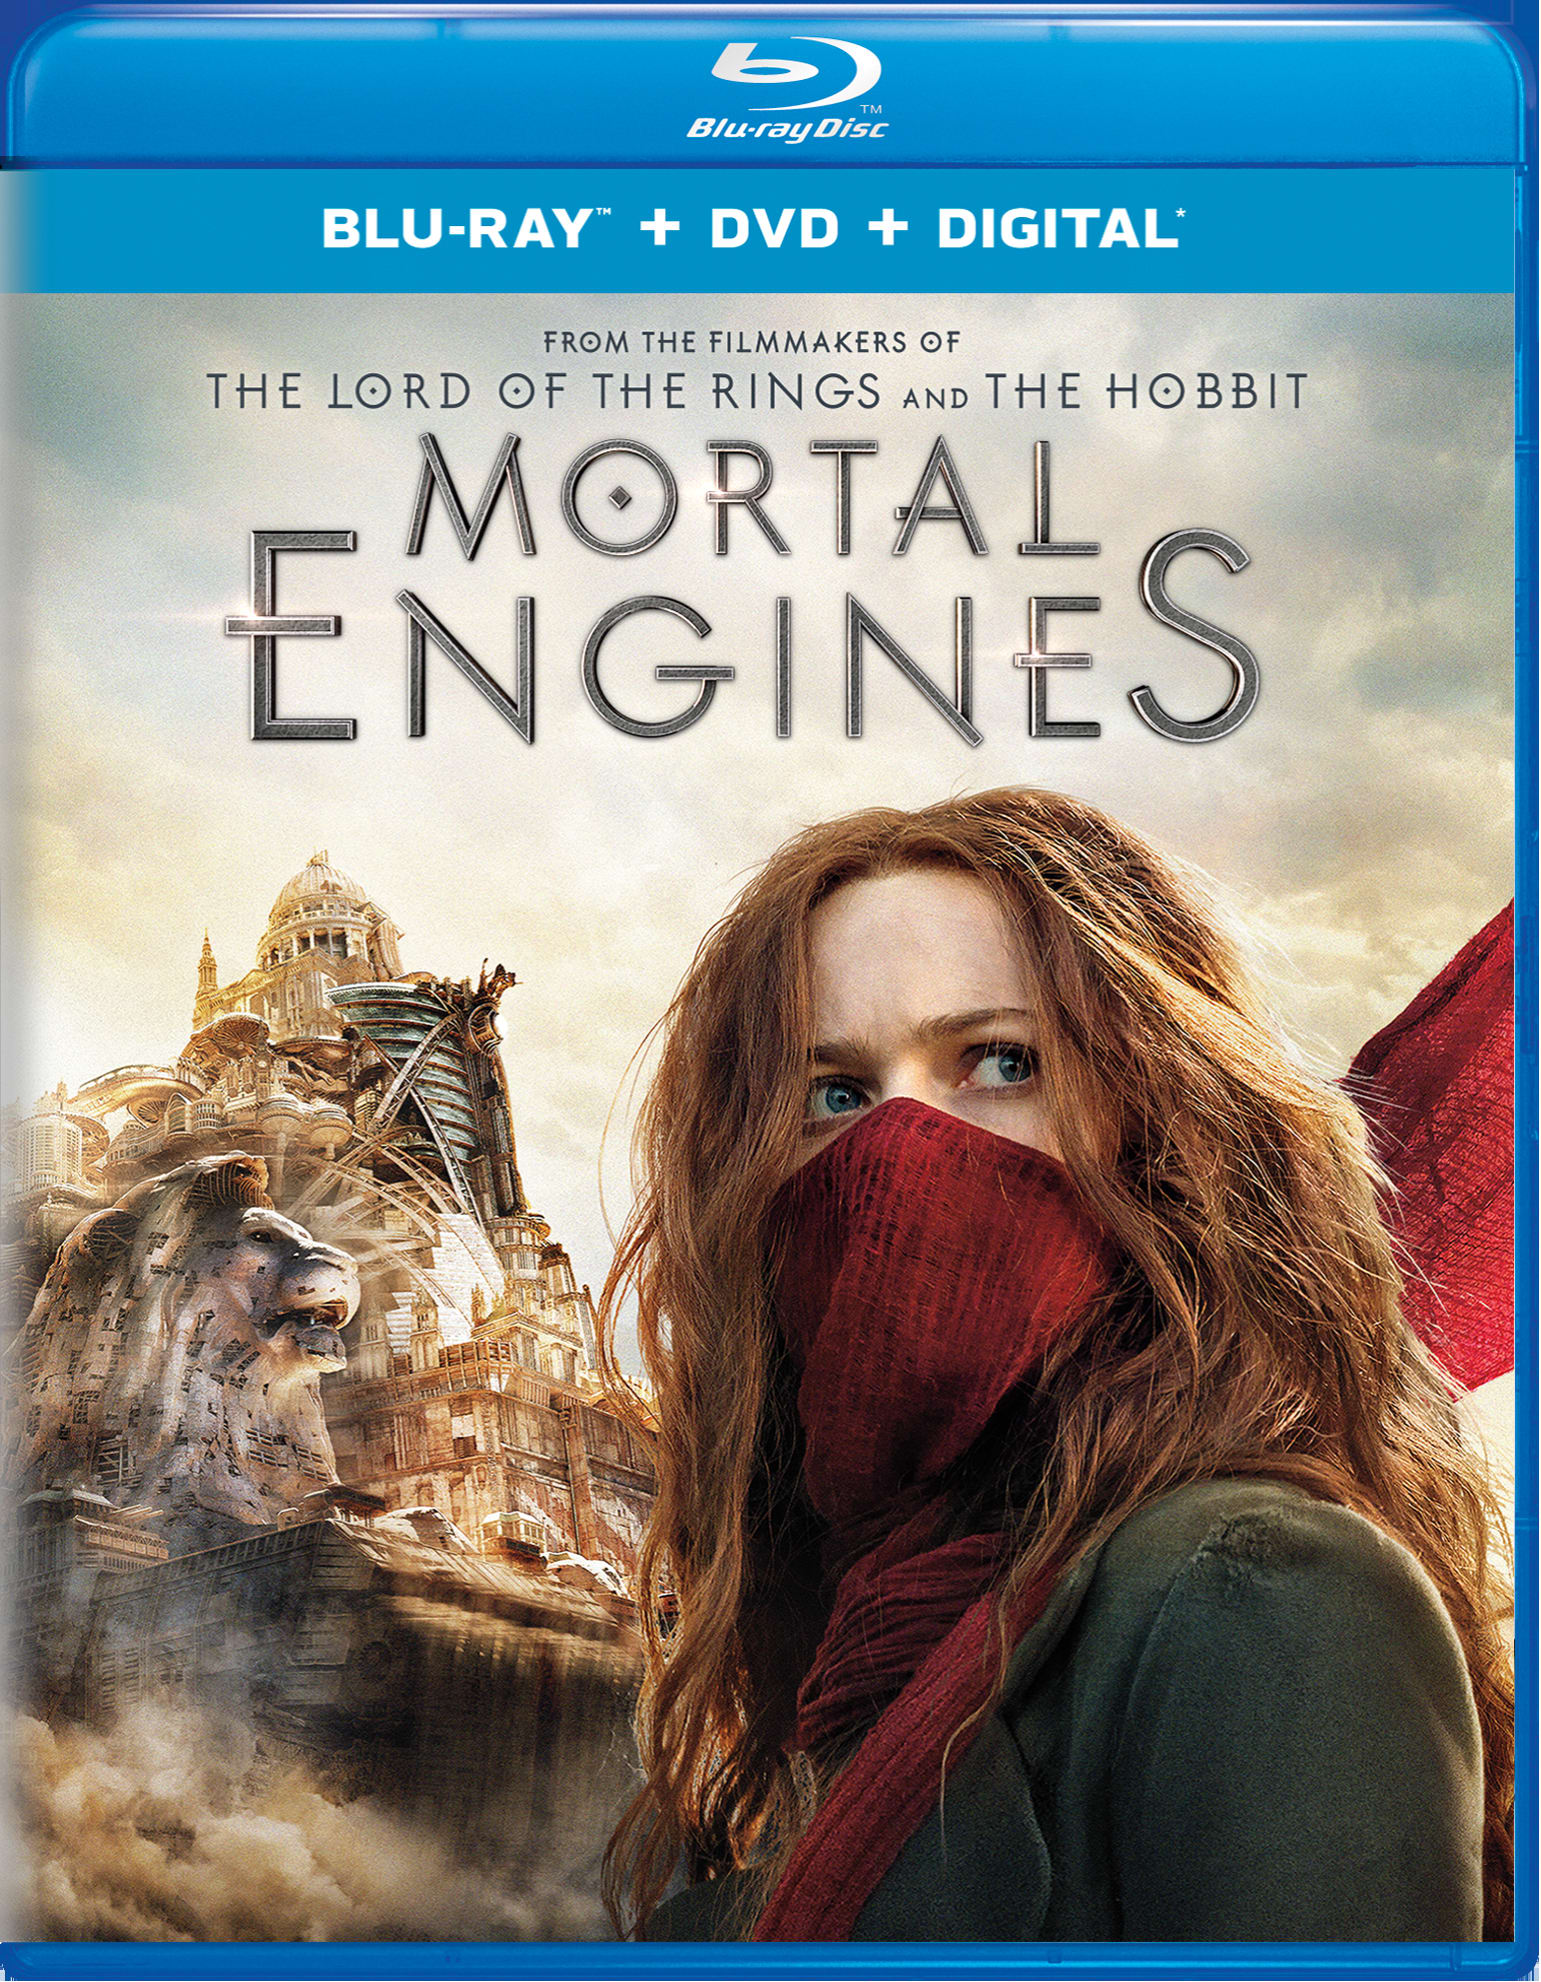 Mortal Engines (DVD + Digital) [Blu-ray]